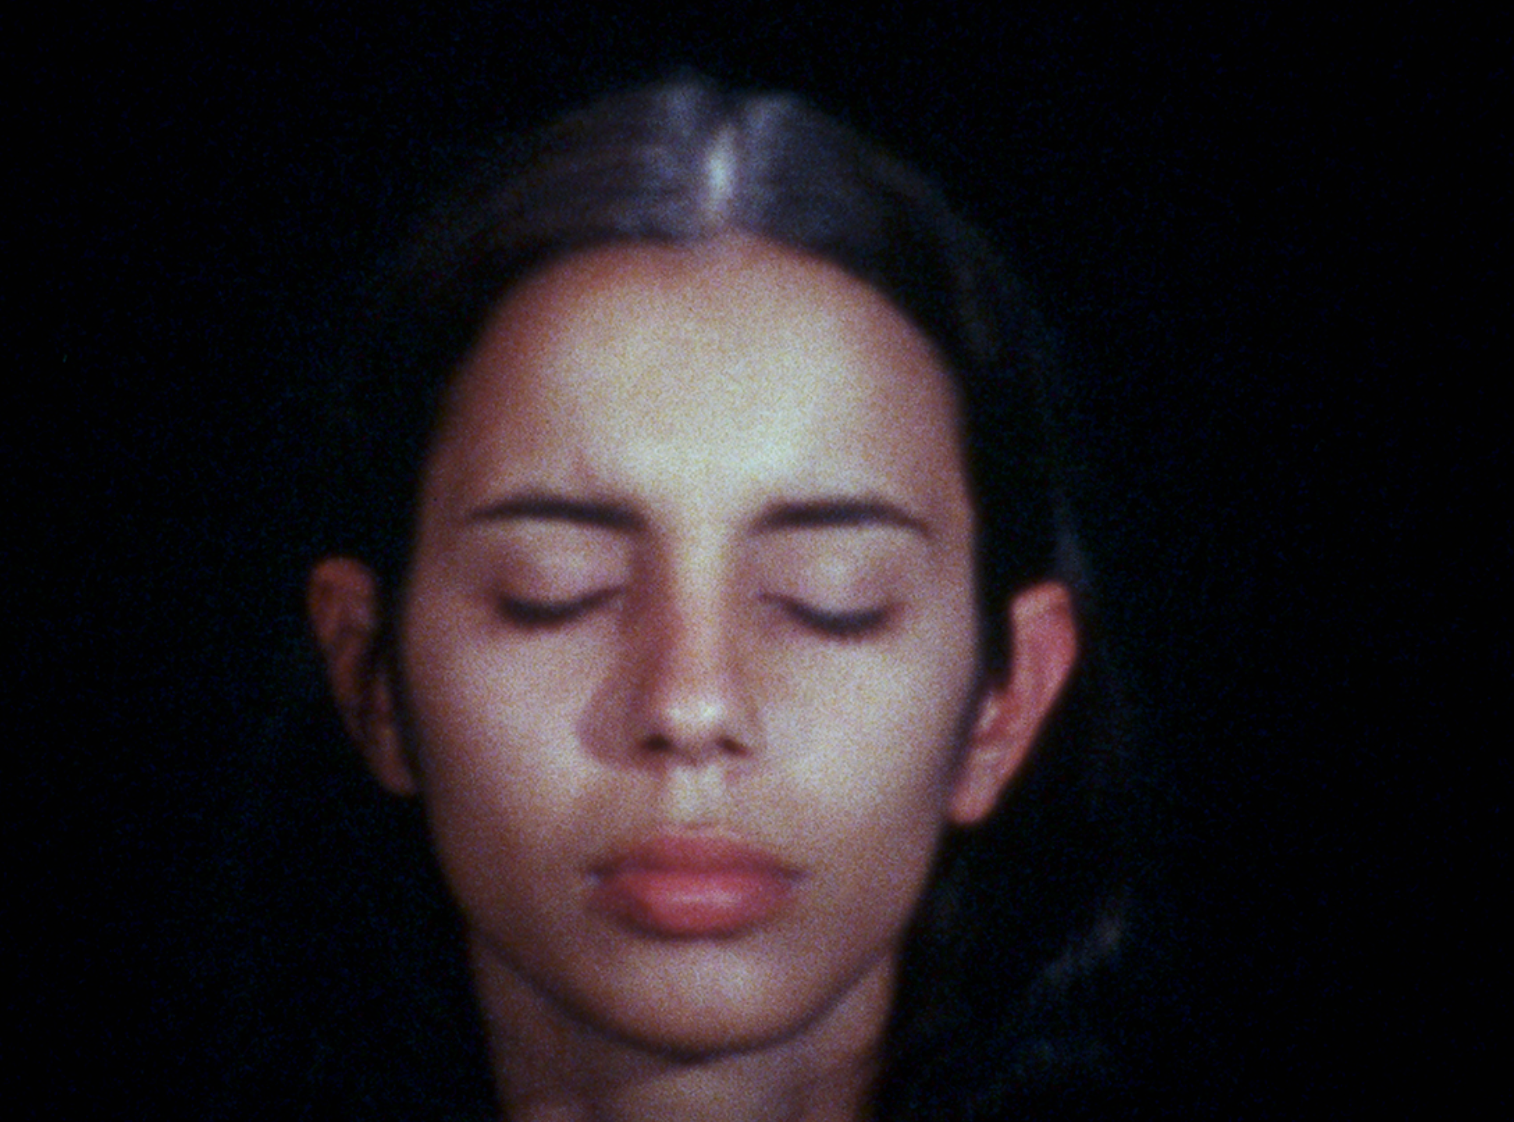  Sweating Blood 1973 Ana Mendieta Film super-8. © The Estate of Ana Mendieta Collection, LLC. Courtesy Galerie Lelong & Co